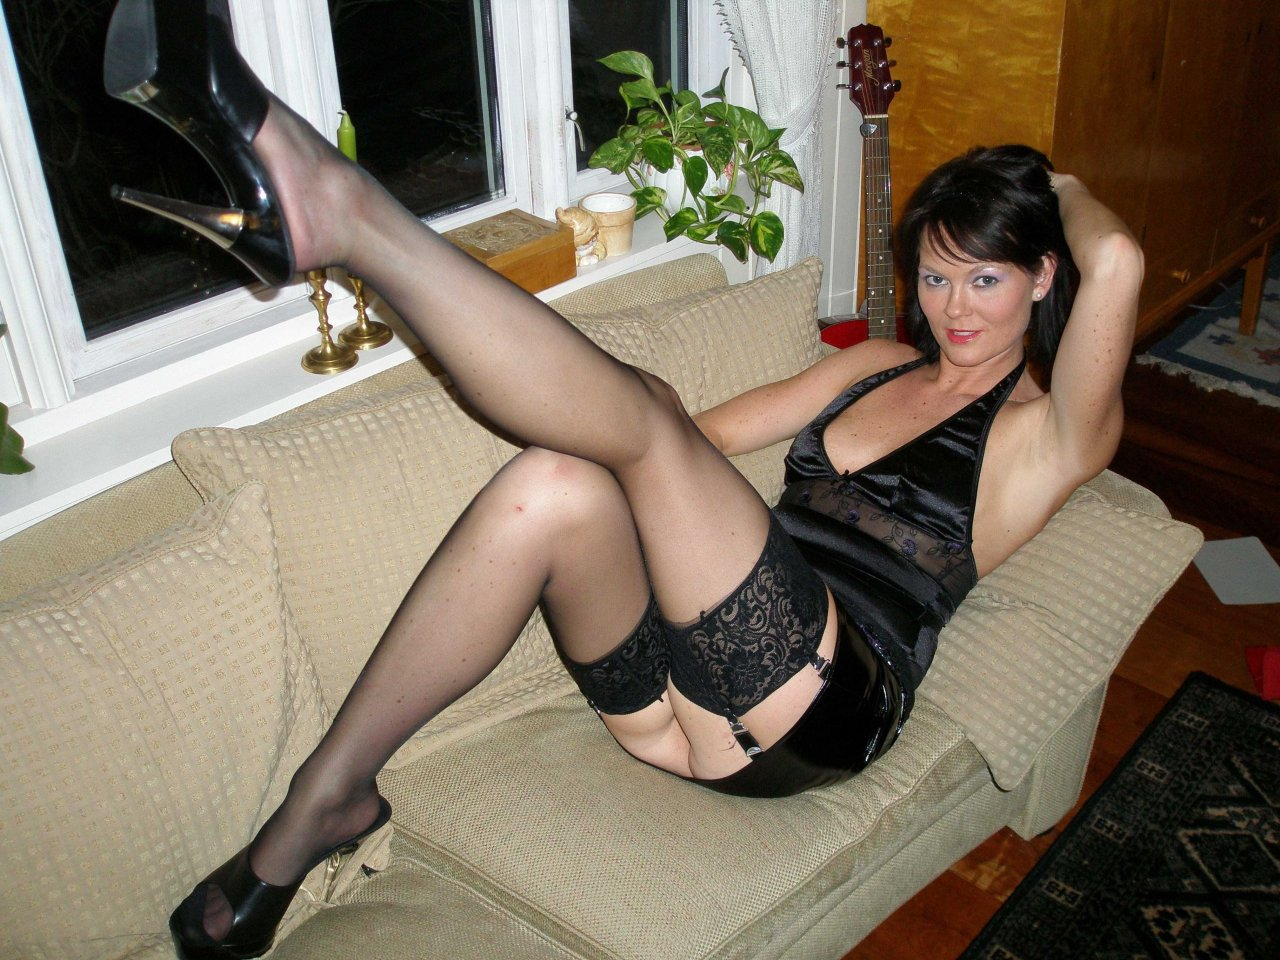 Hot mature red sexy underwear, lady sexy shape coset with